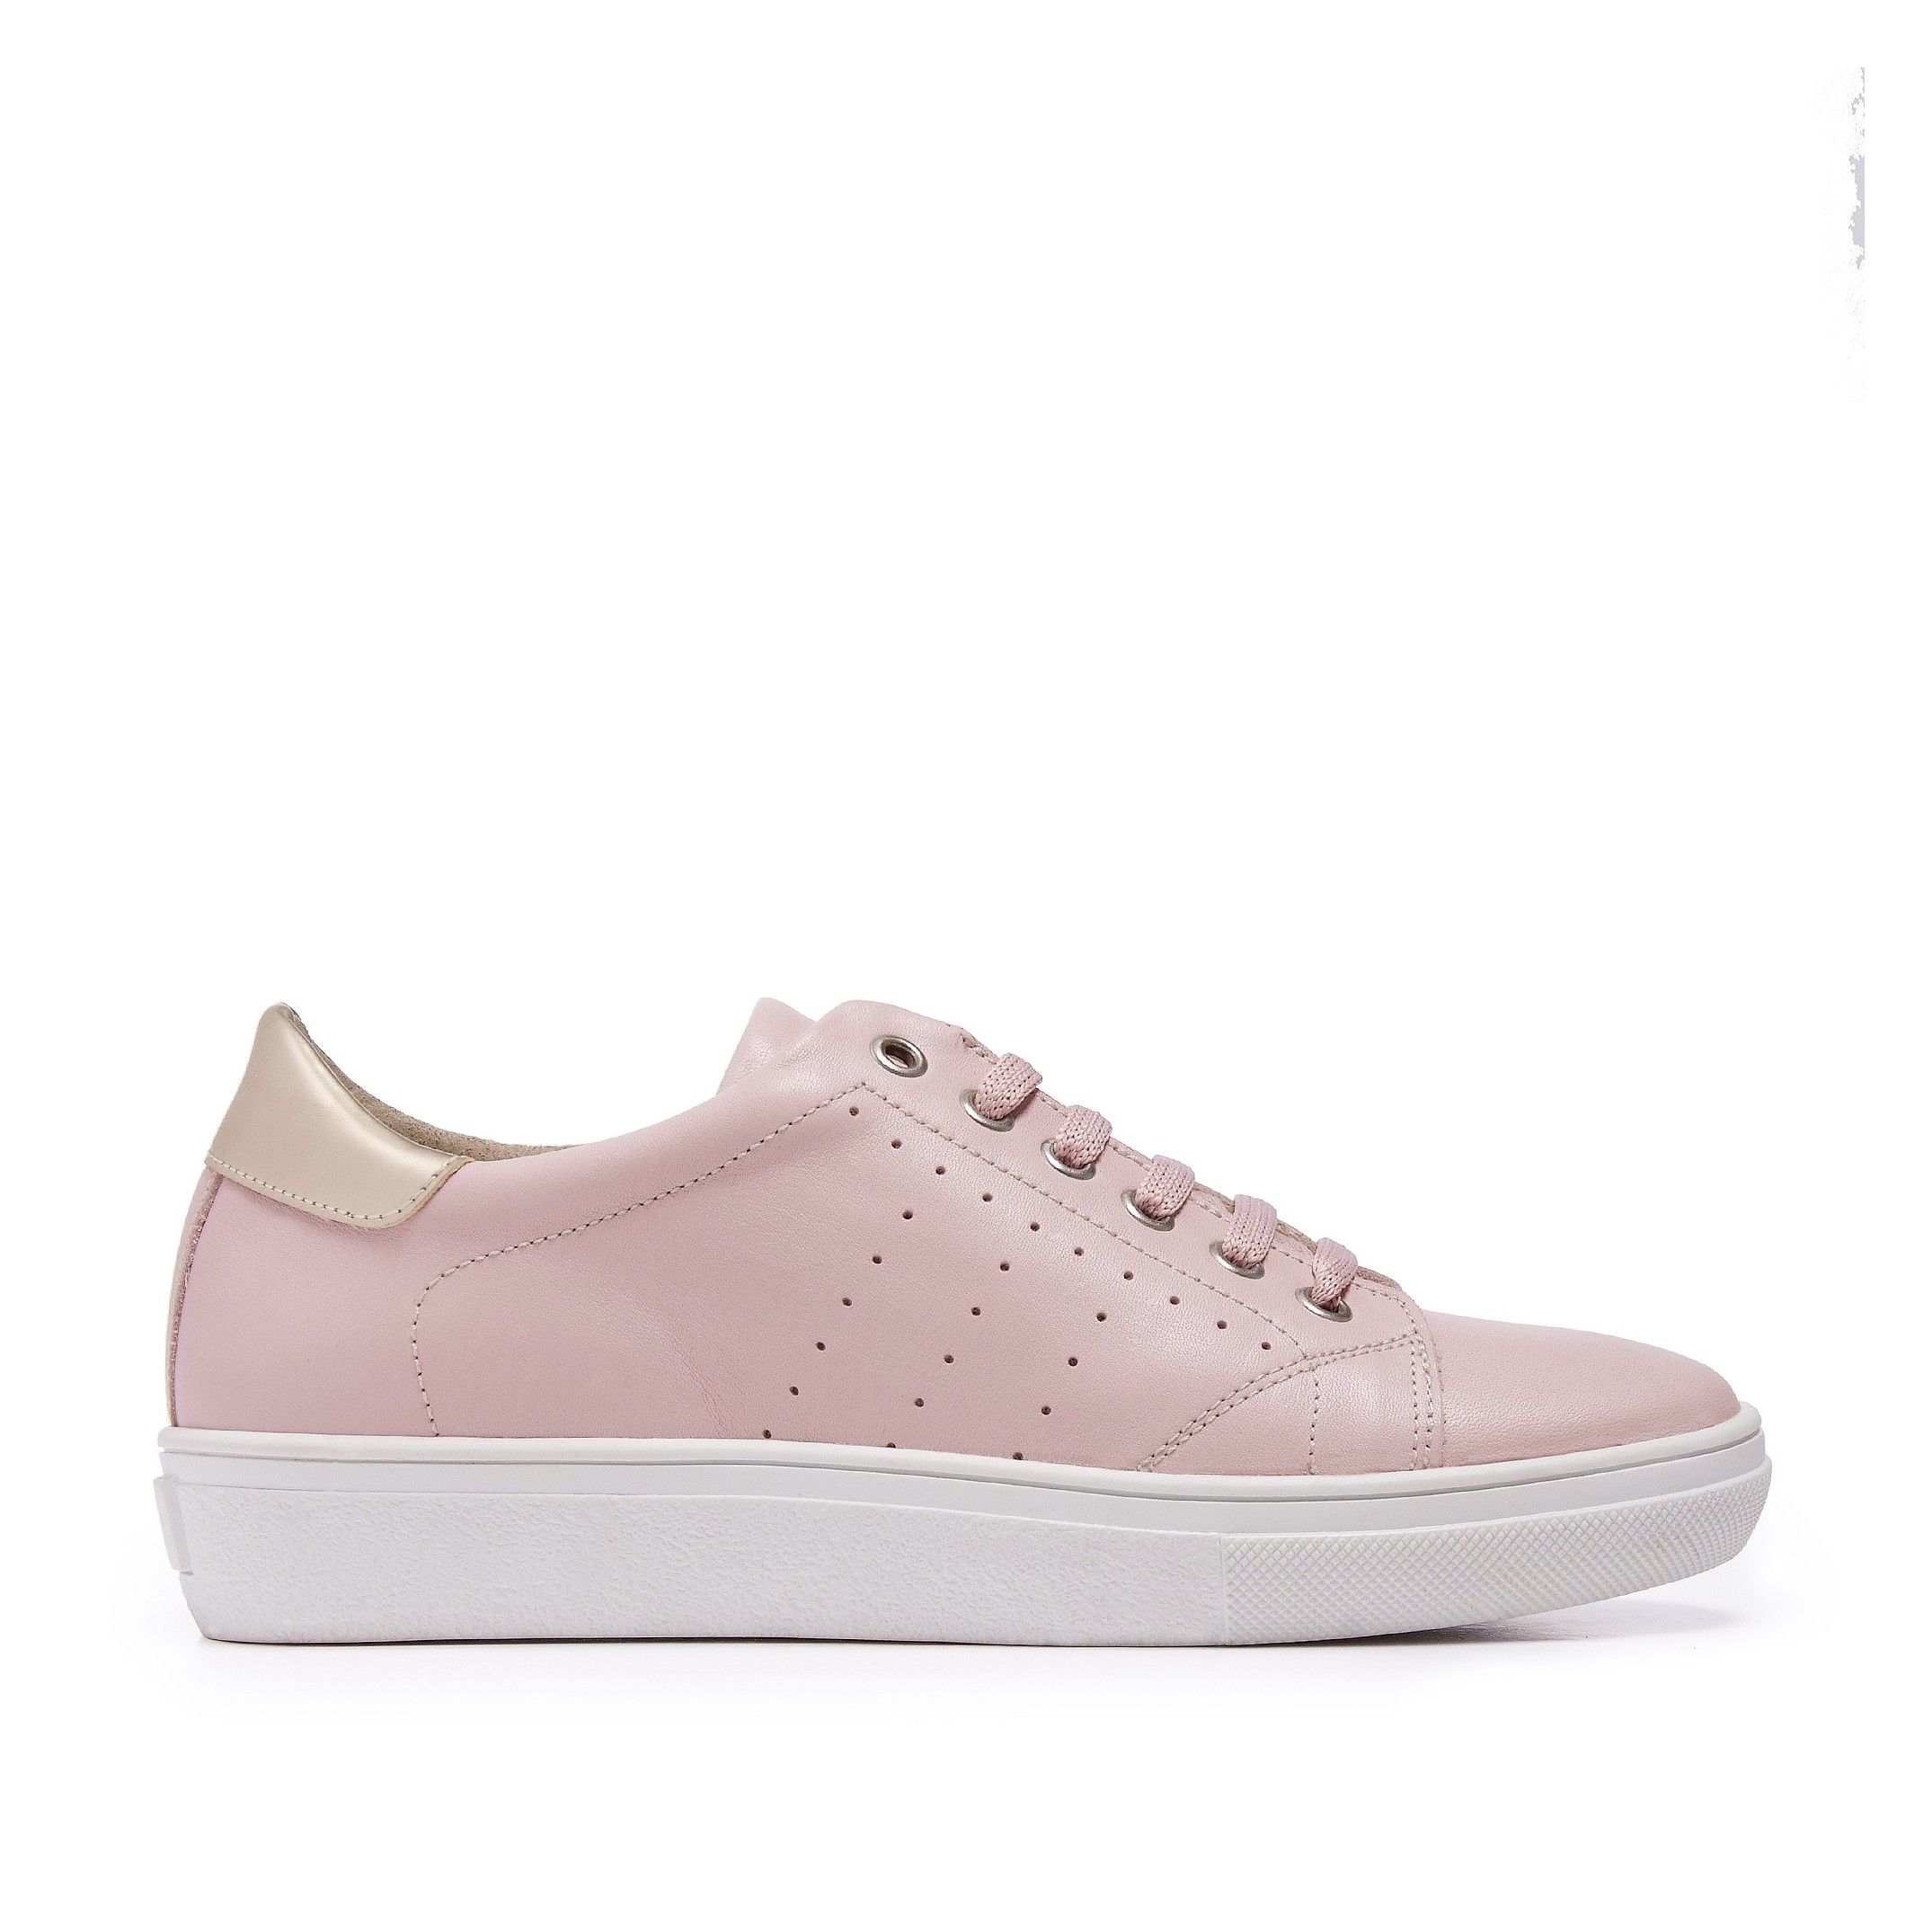 Classic Leather Sneakers Rose María Barceló